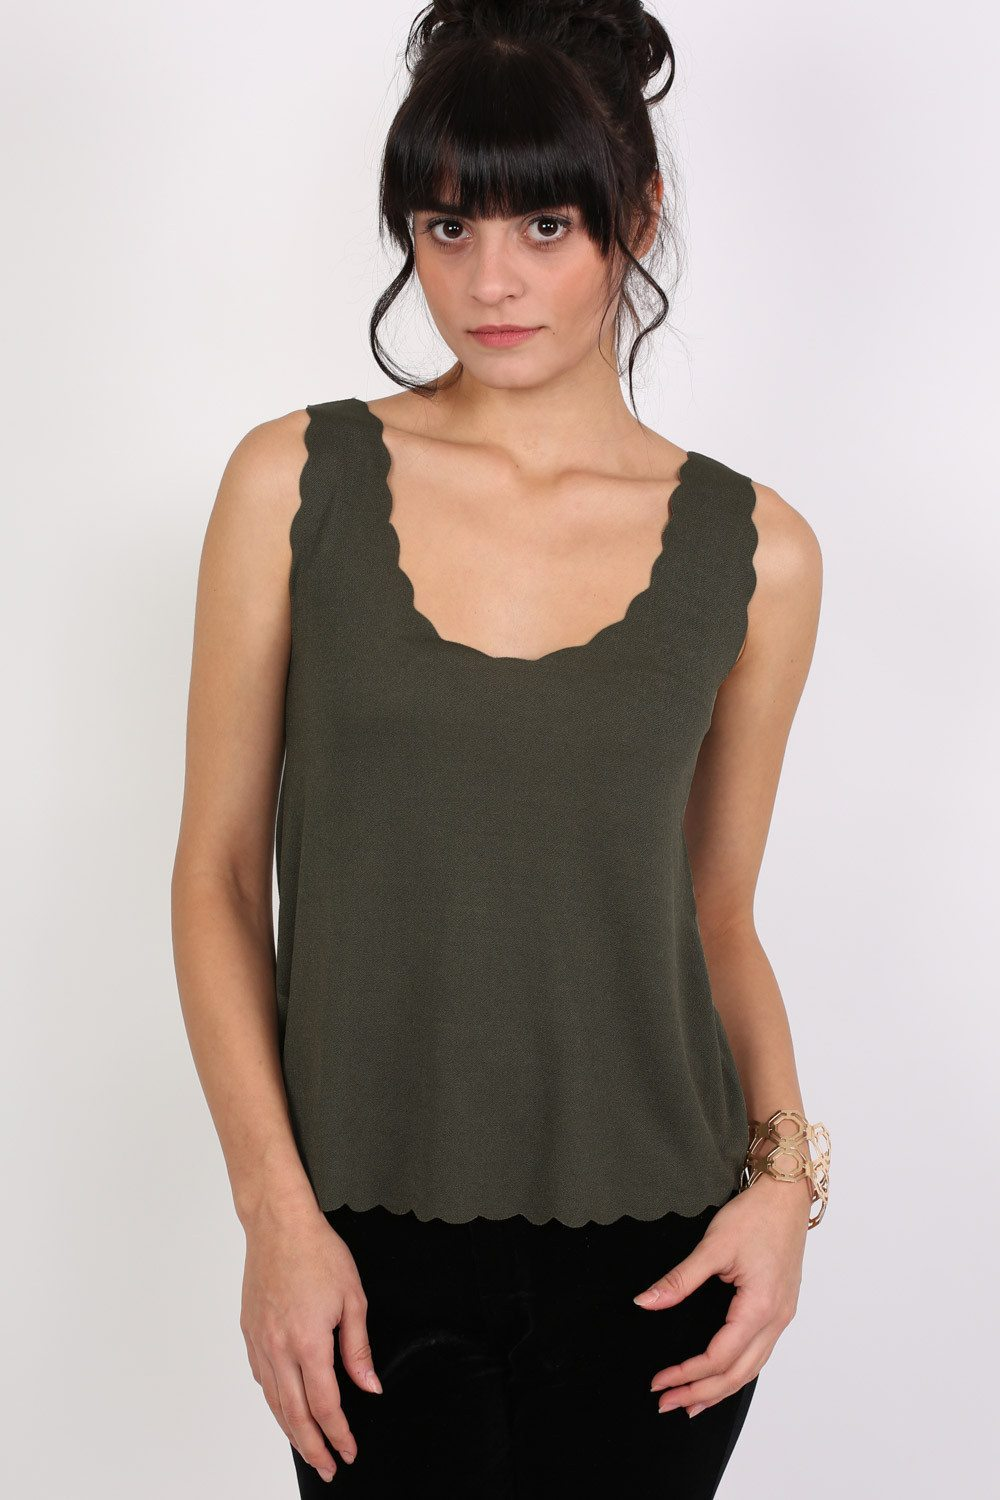 Scallop Edge Sleeveless Top in Khaki Green 0